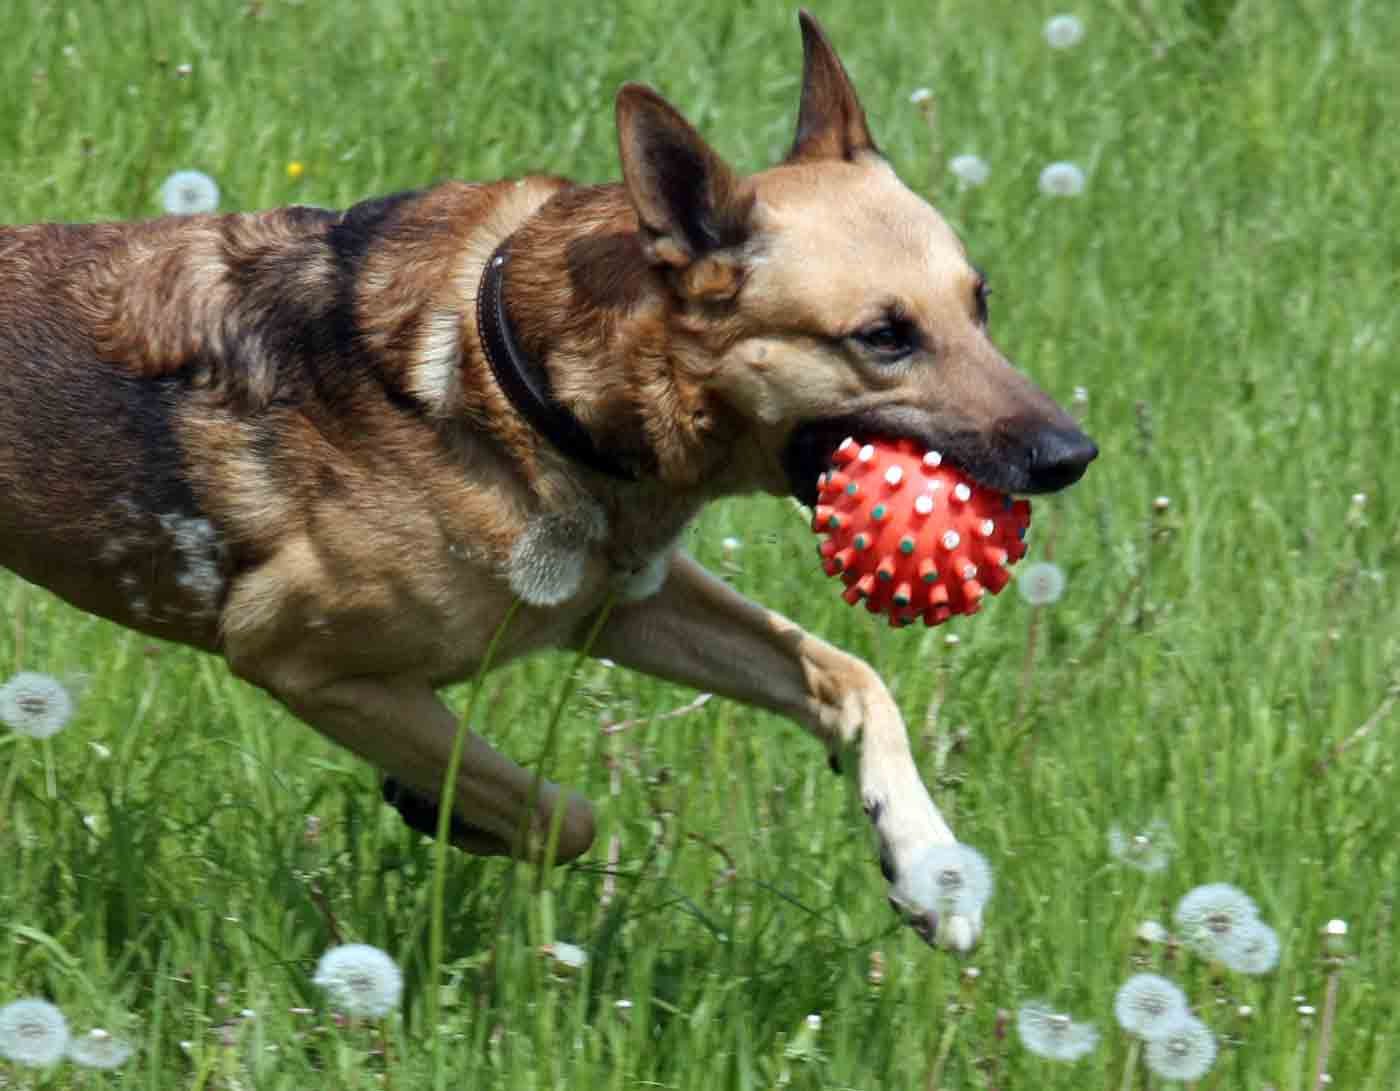 dog with ball in mouth running in a field